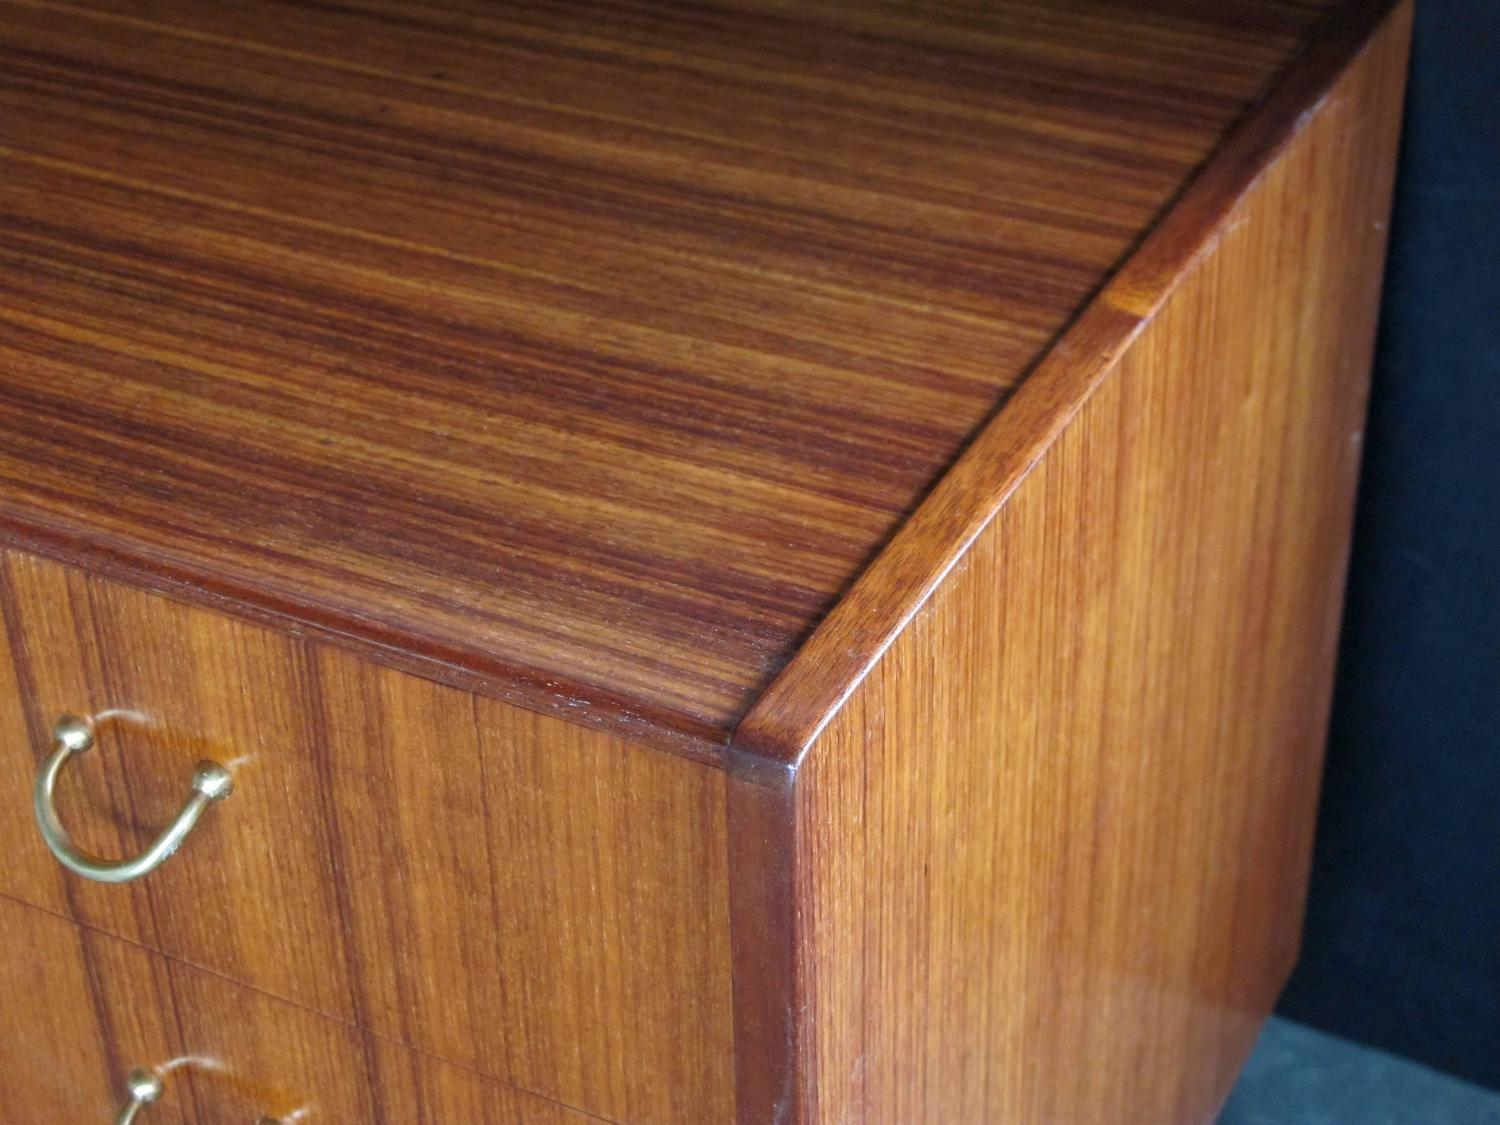 #9B6630  English G Plan Three Drawer Teak 'Floating' Chest For Sale At 1st  with 1500x1125 px of Recommended Floating Chest Of Drawers 11251500 save image @ avoidforclosure.info